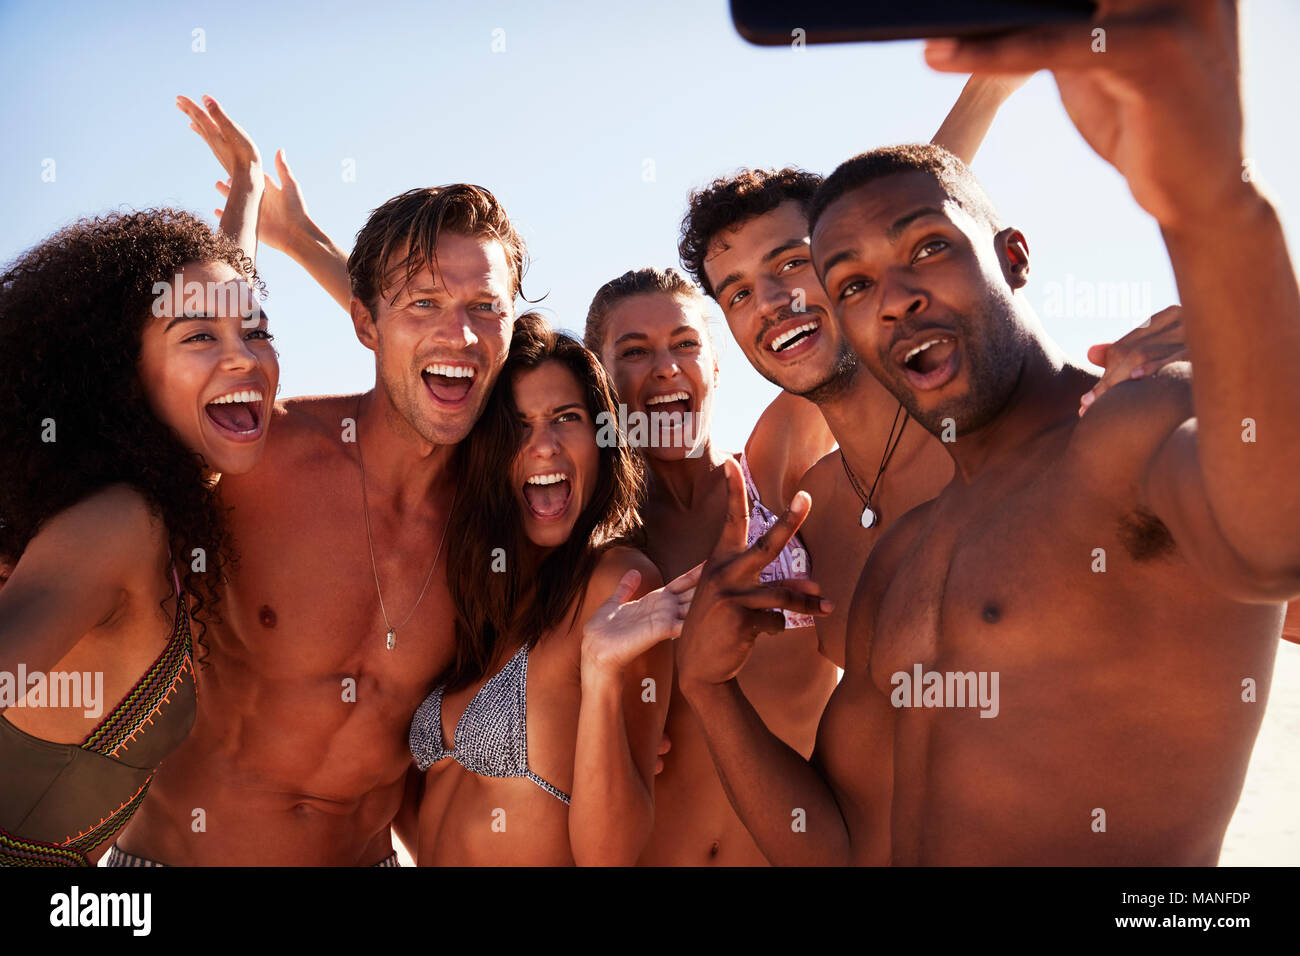 Group Of Friends Posing For Selfie Together On Beach Vacation - Stock Image